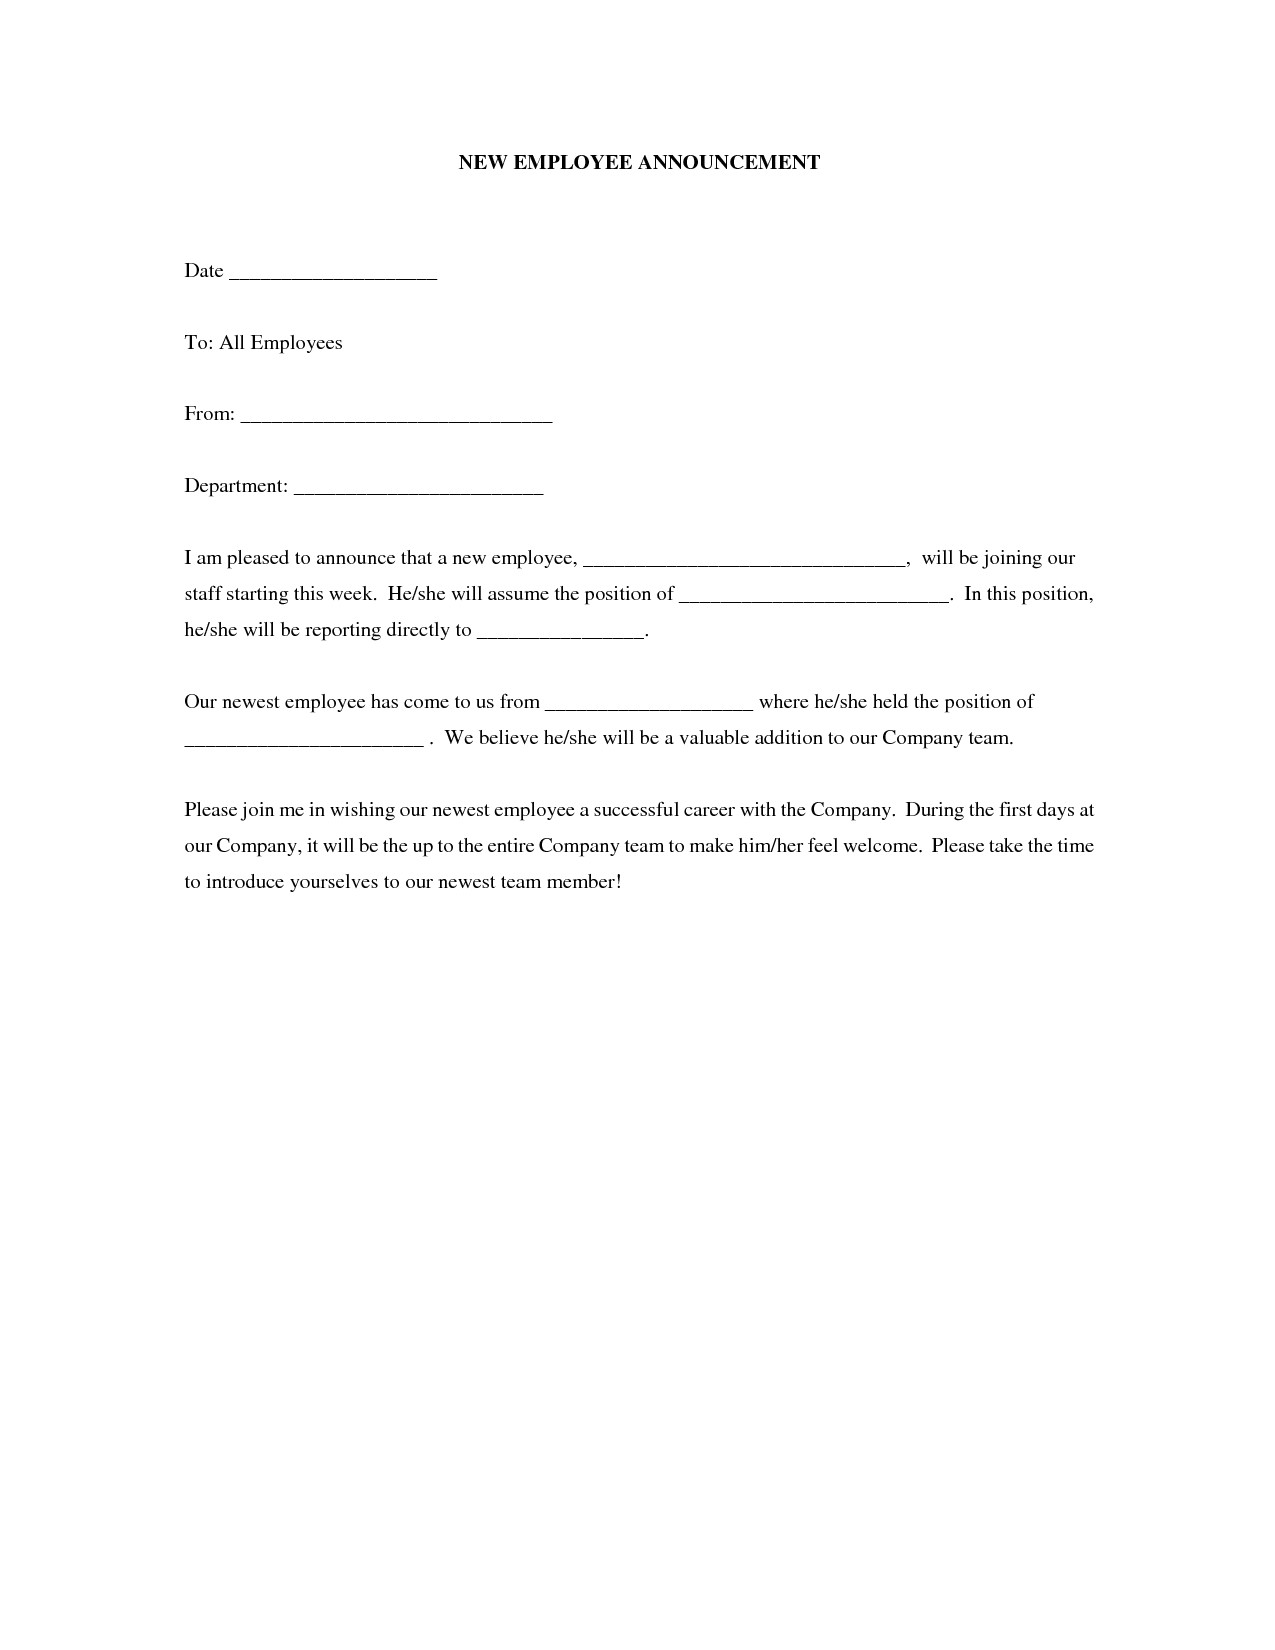 post new employee announcement letter 370390